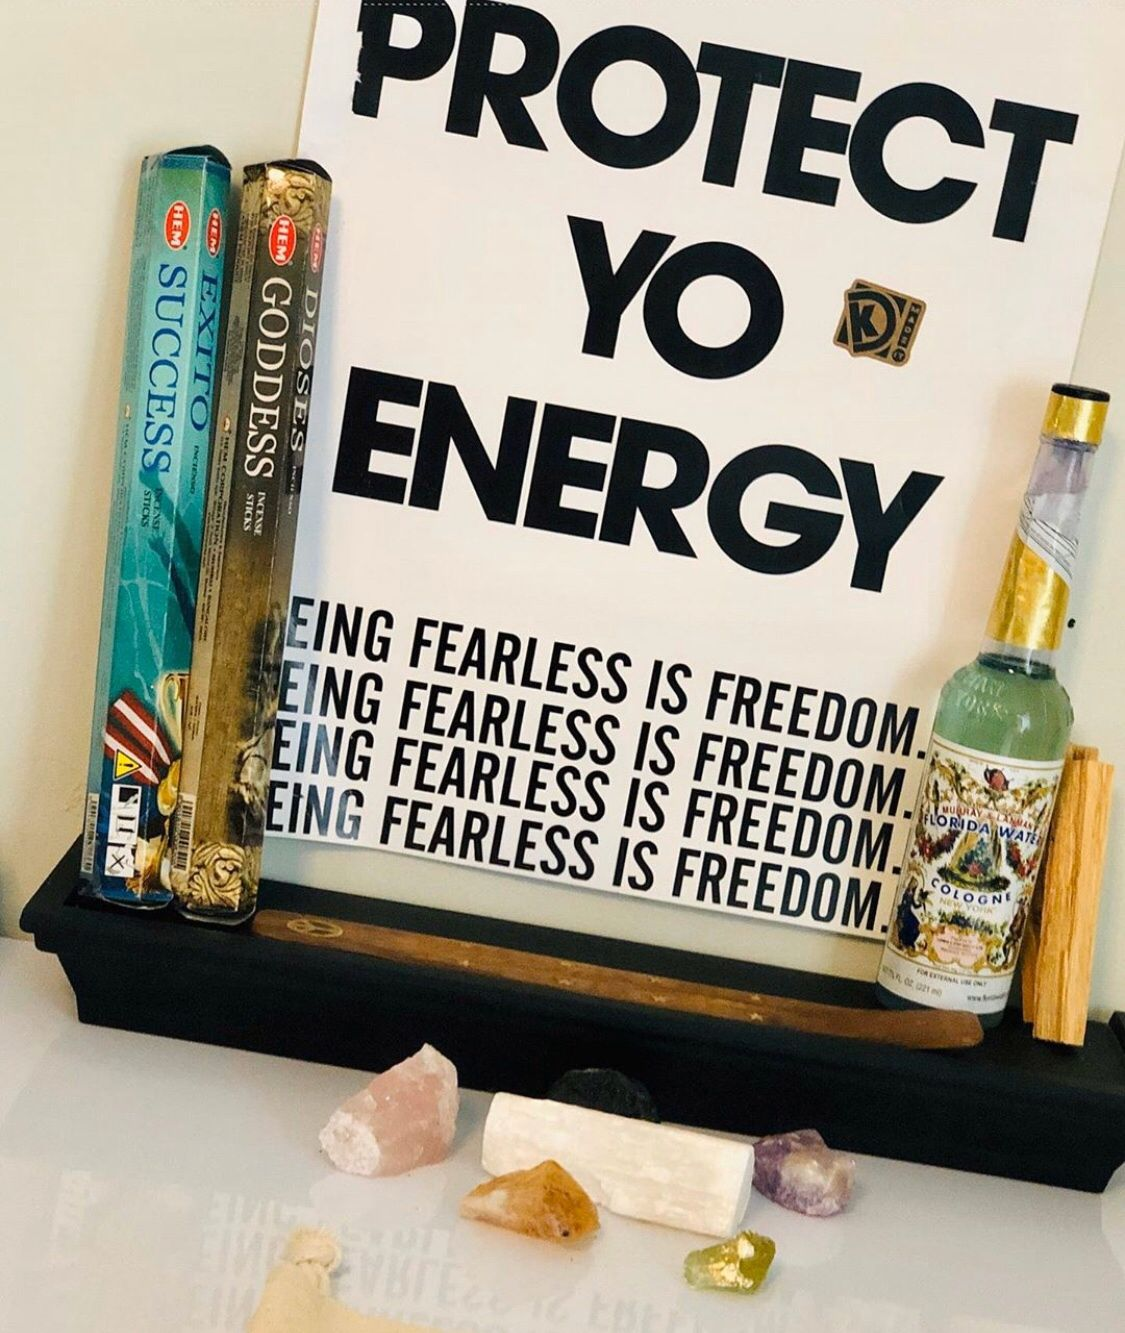 How do you protect your energy you can protect yourself